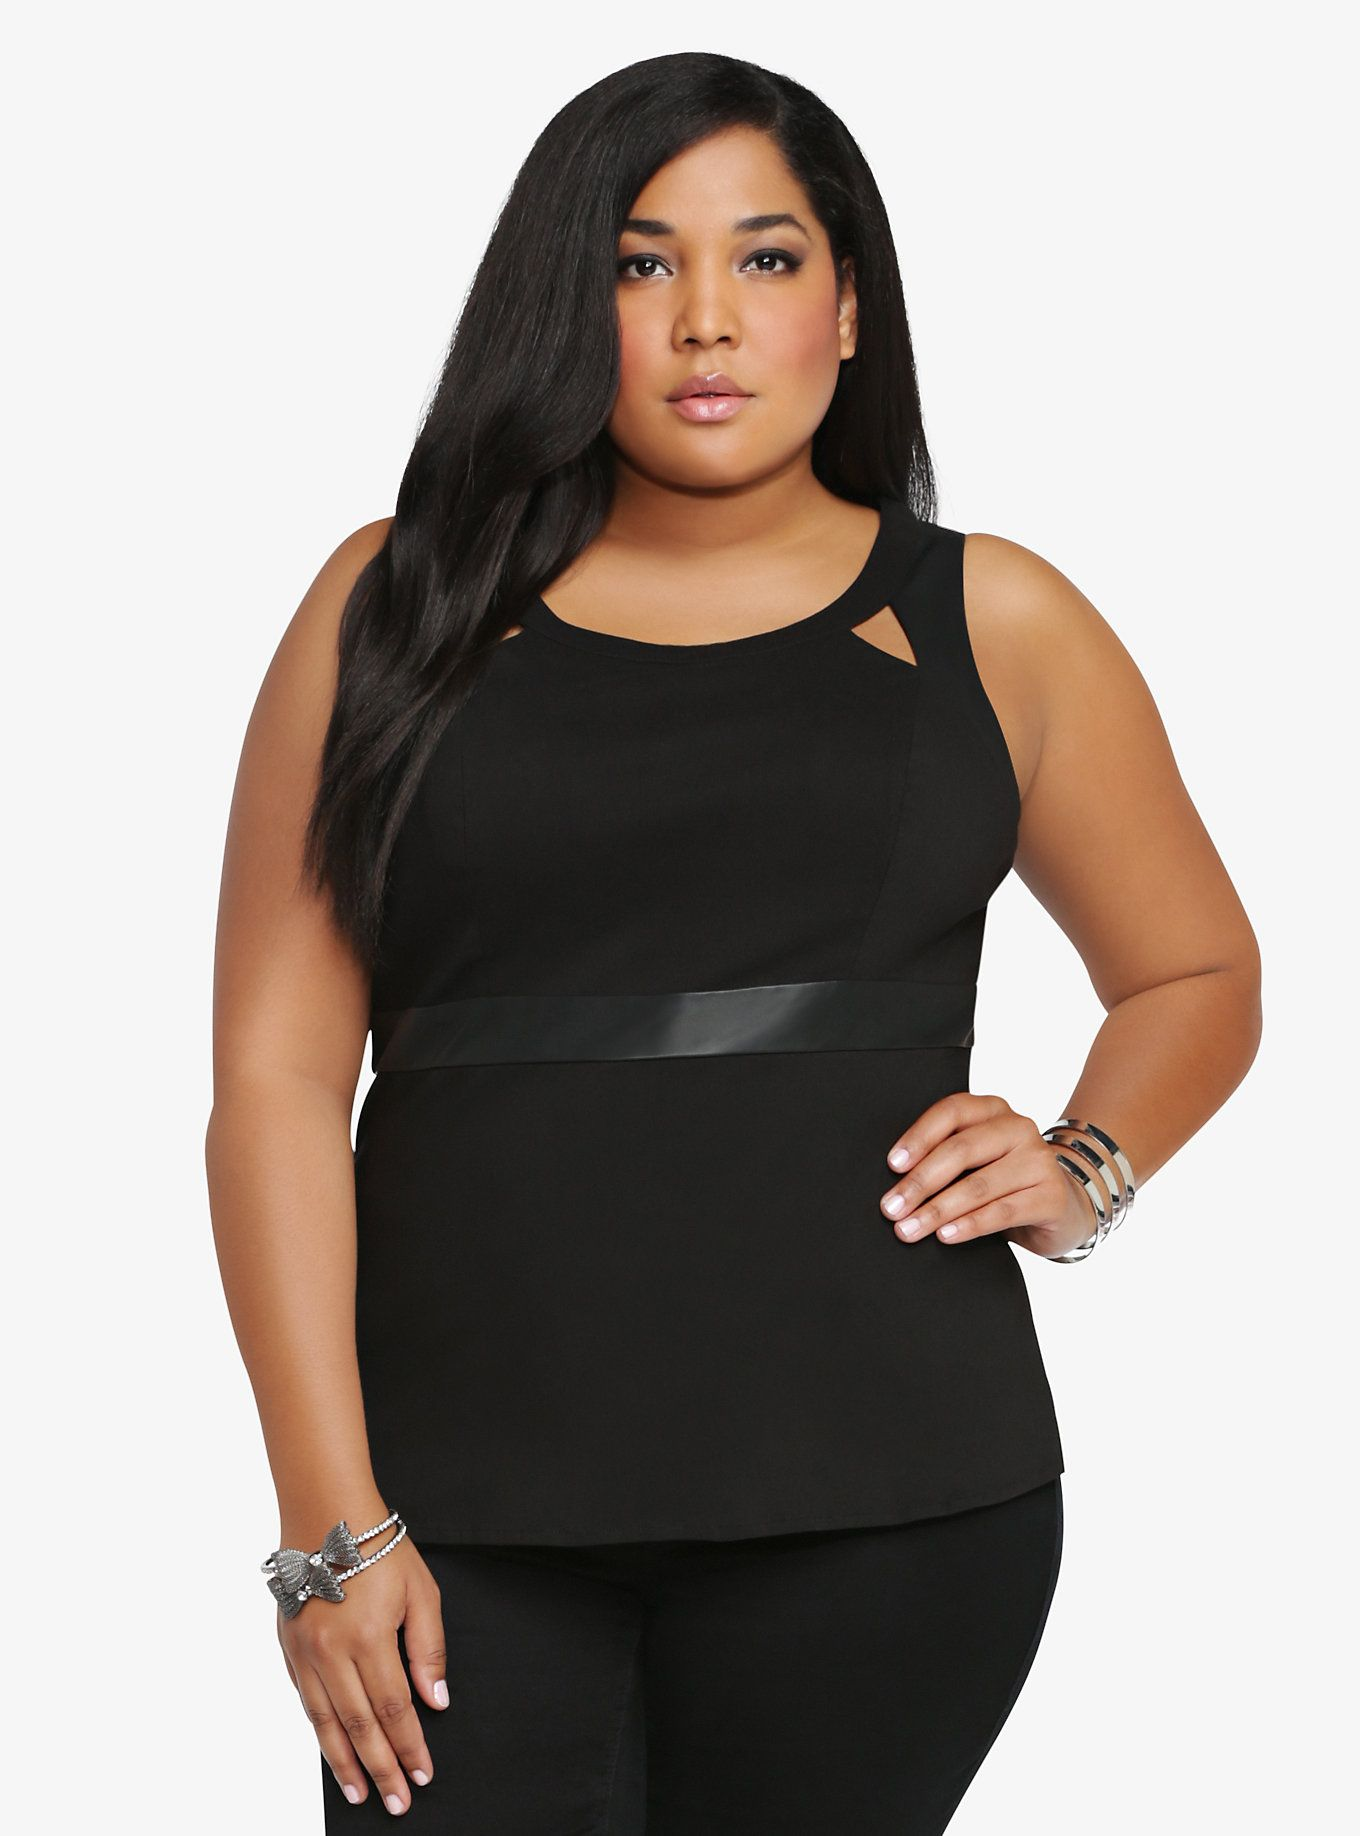 81c7b49d6e Shop affordable plus size clothing   fashion on clearance from Torrid. Find plus  size clothes